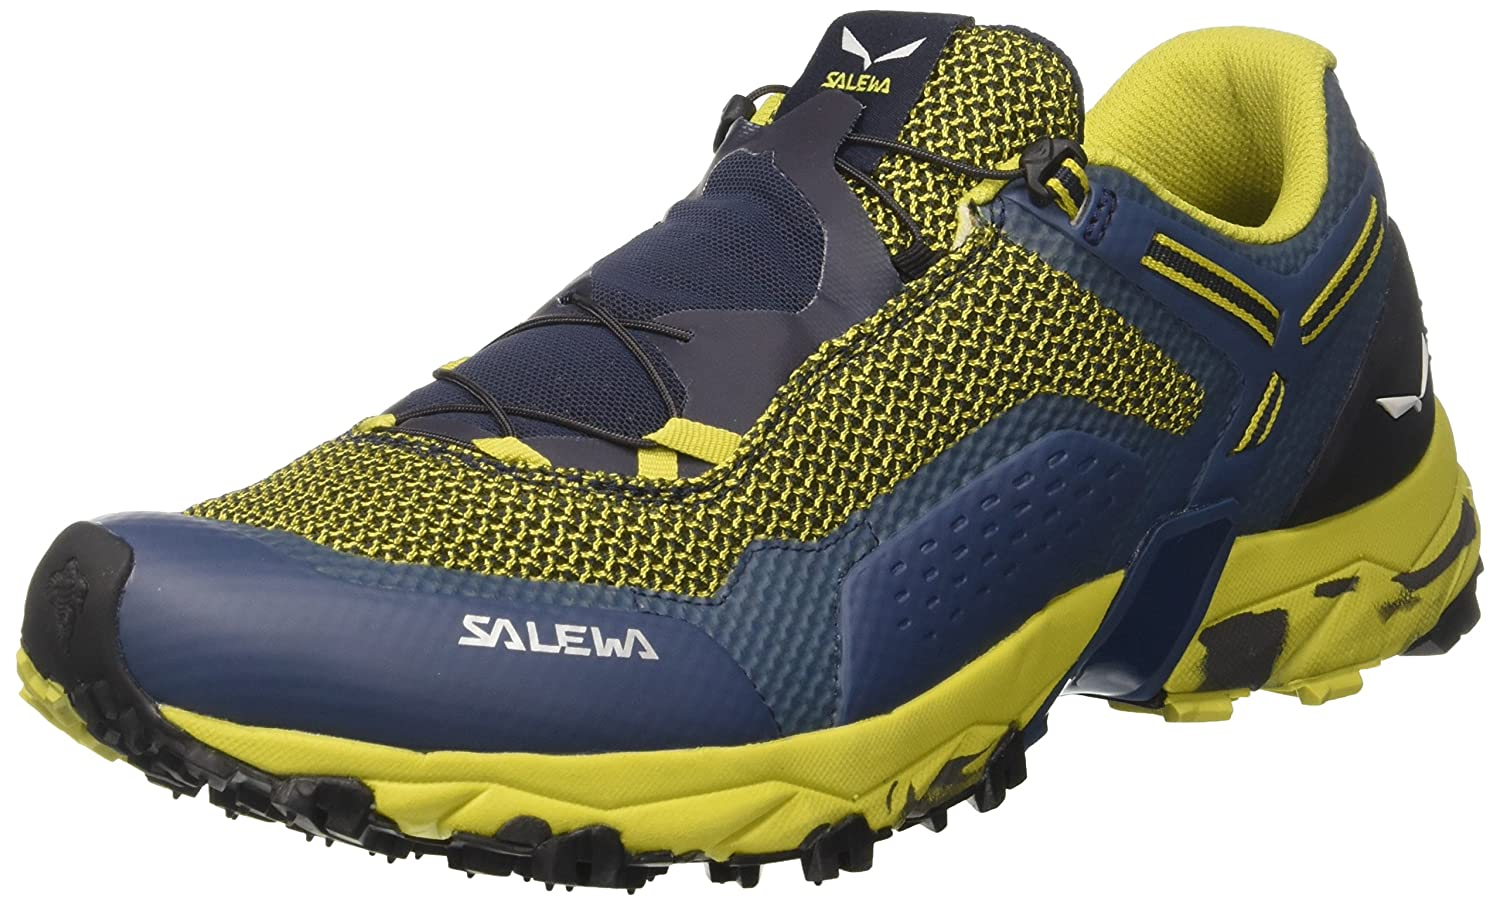 TALLA 42 EU. SALEWA Ms Ultra Train 2, Zapatillas de Senderismo para Hombre